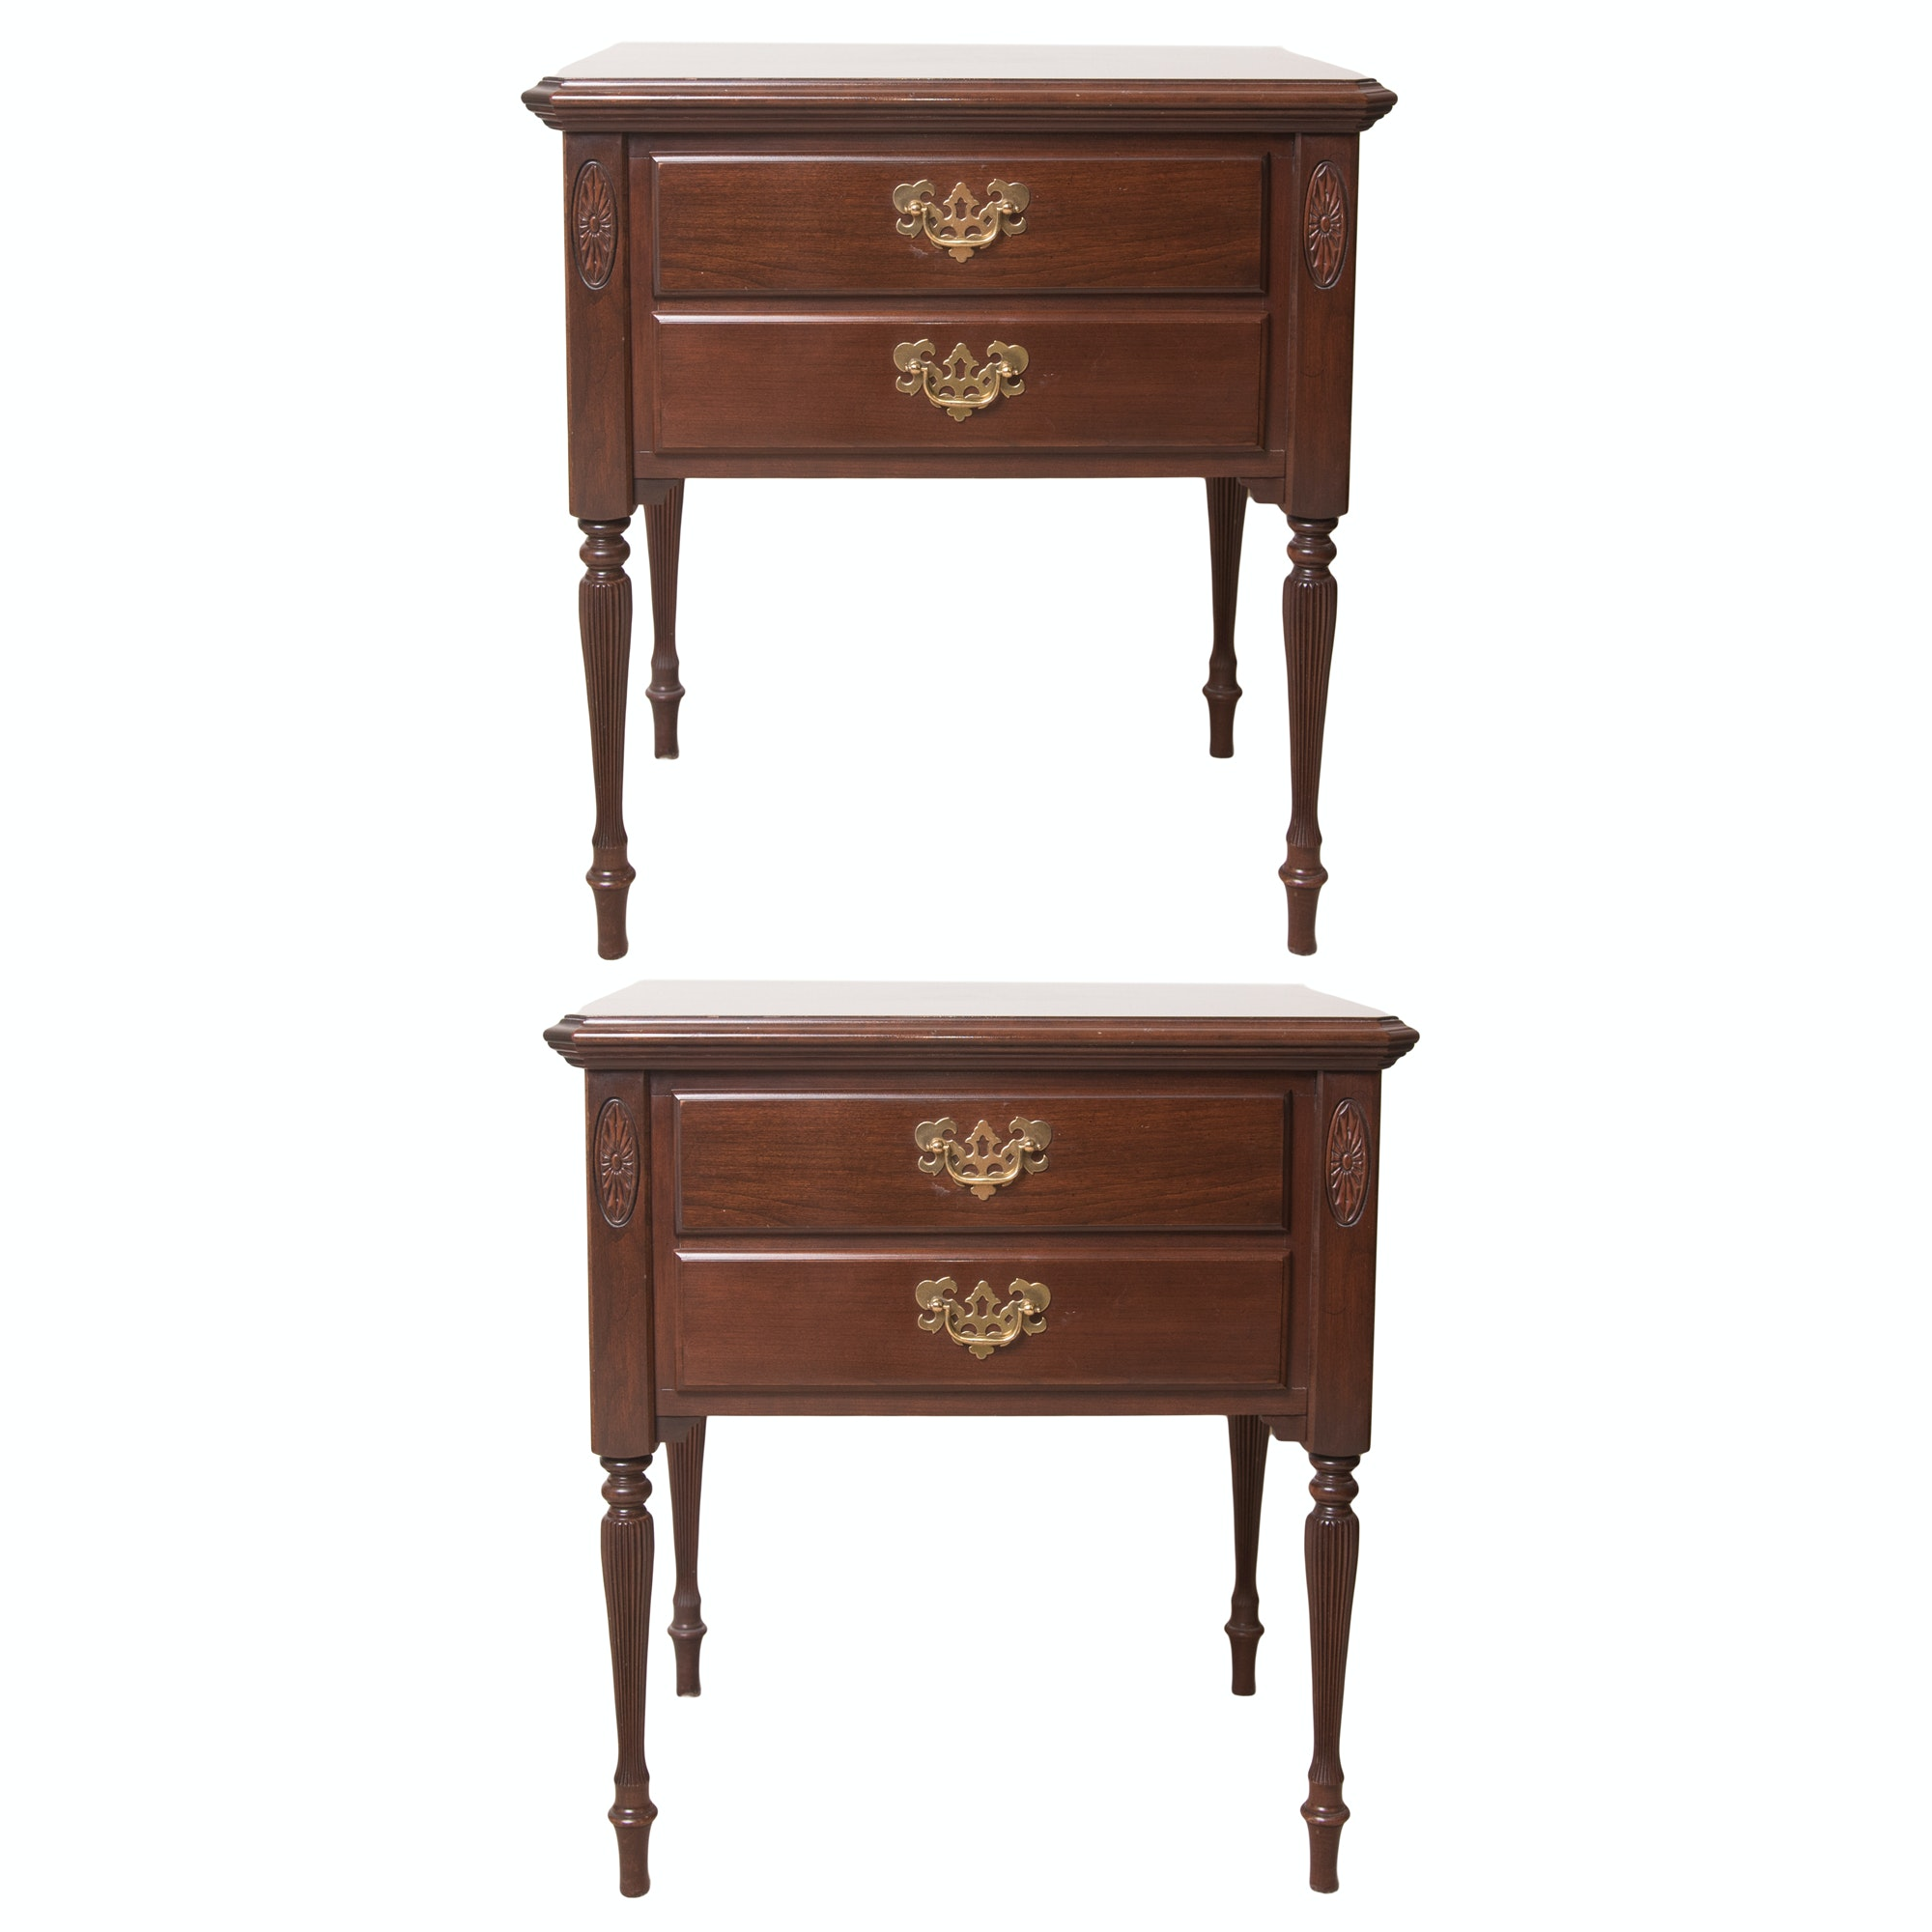 Colonial Revival Night Stands by Ethan Allen